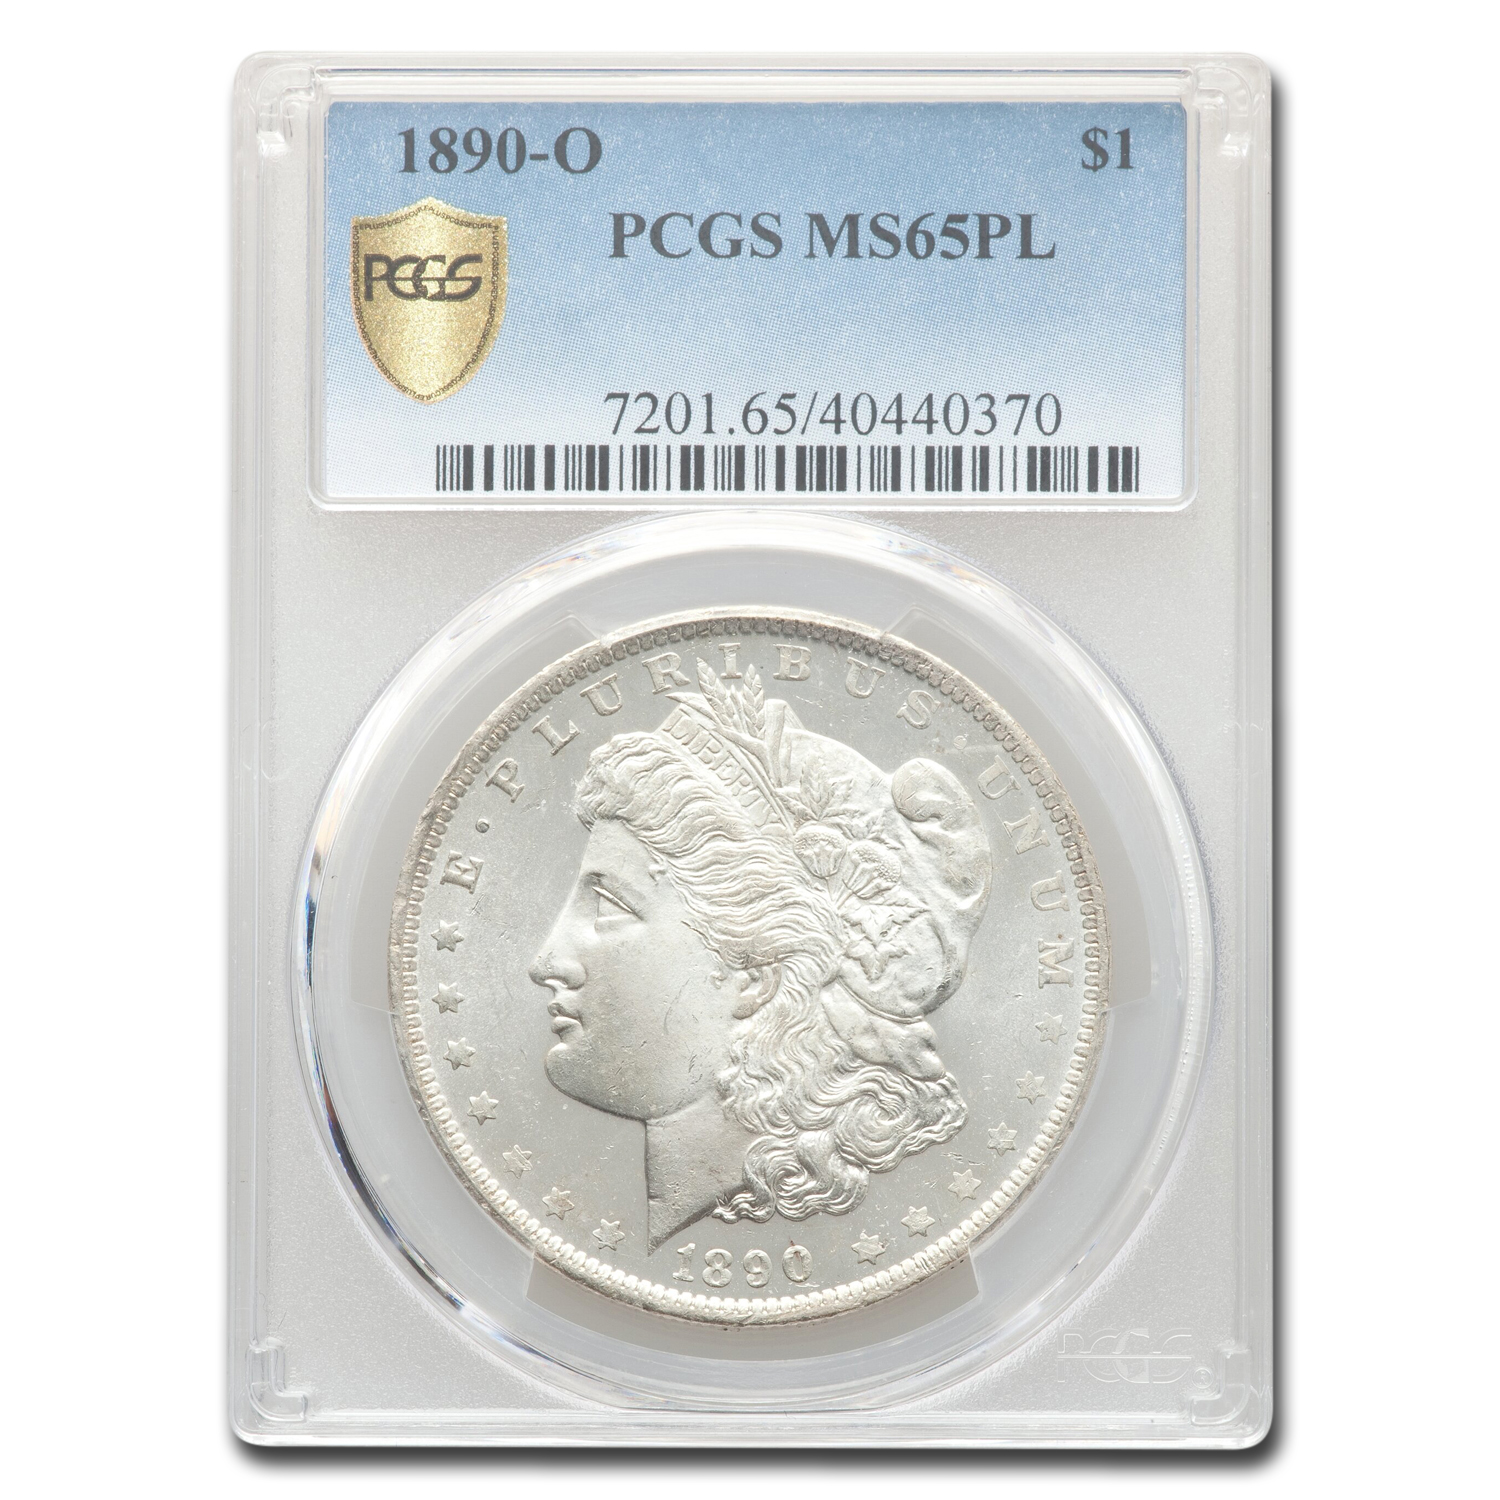 1890-O Morgan Dollar - MS-65 PL Proof Like PCGS